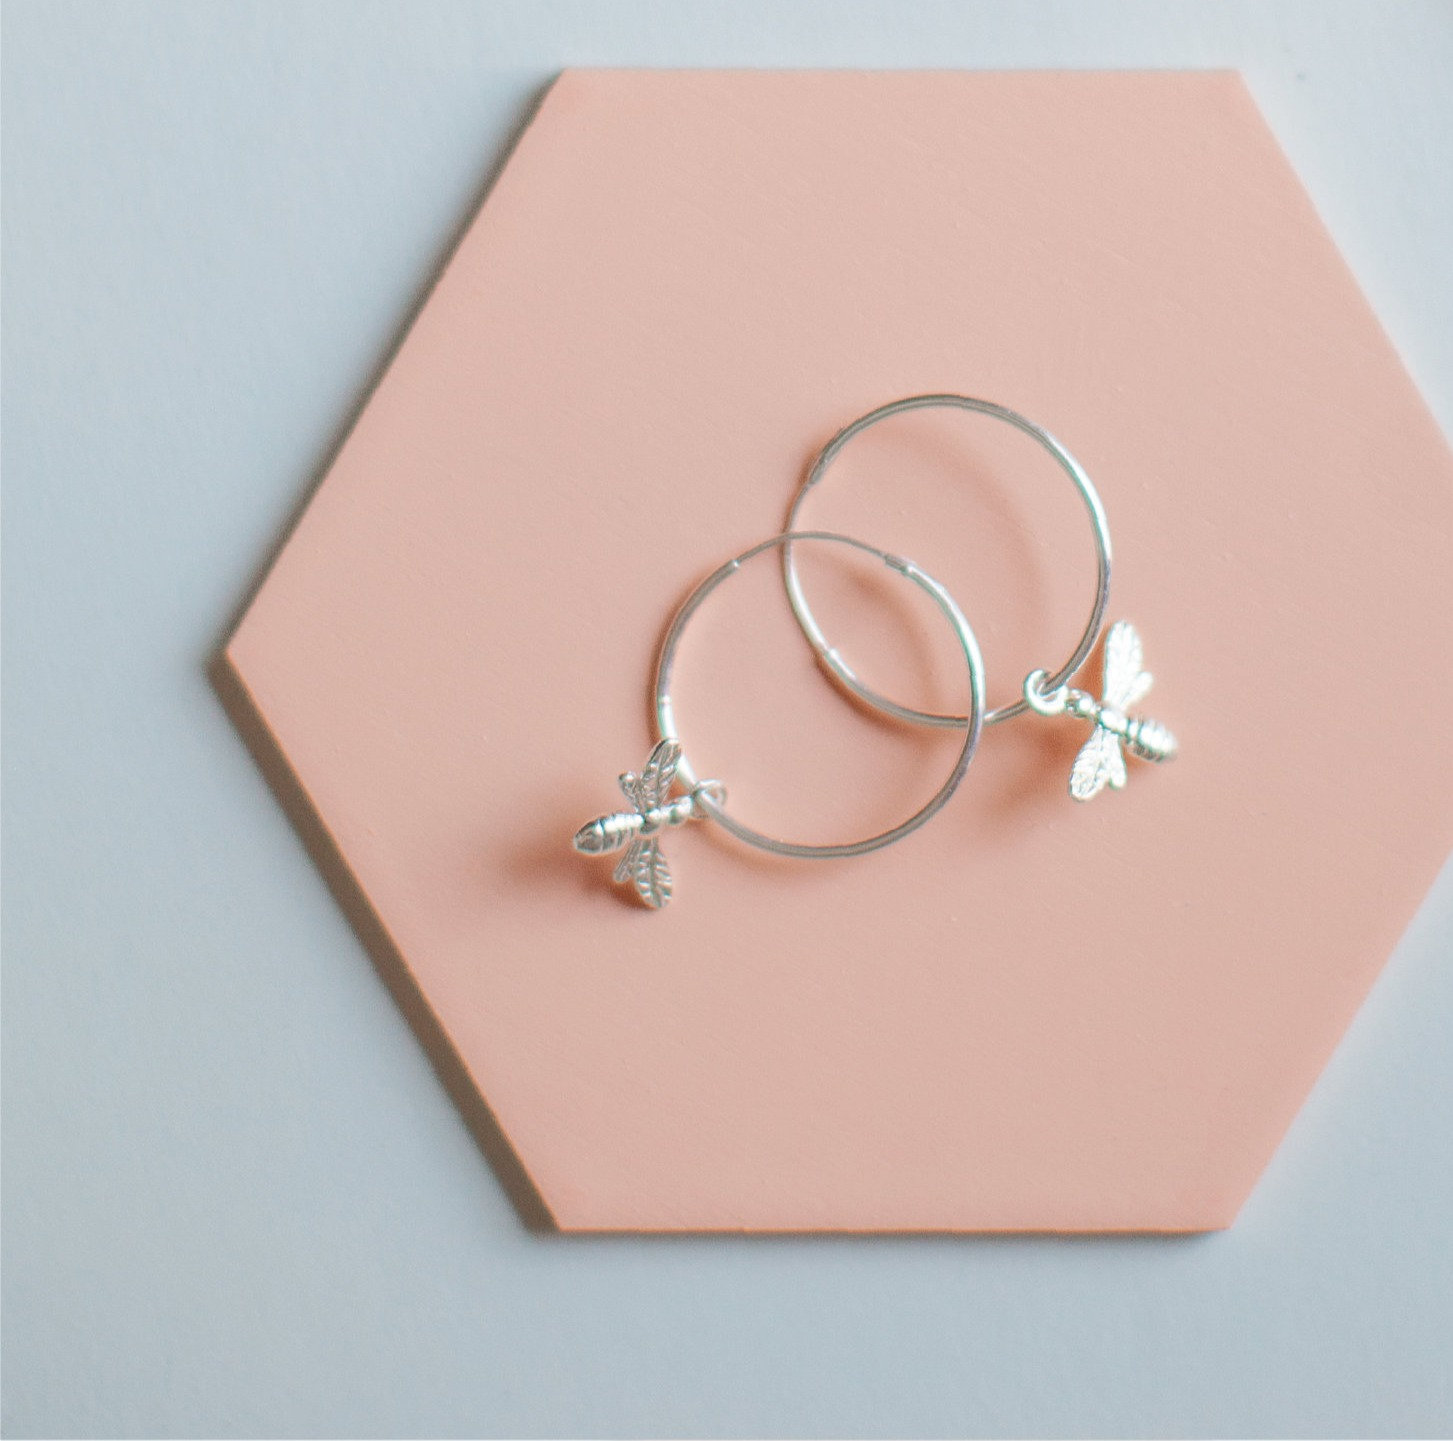 Sterling silver hoops which come in a £50 gift box